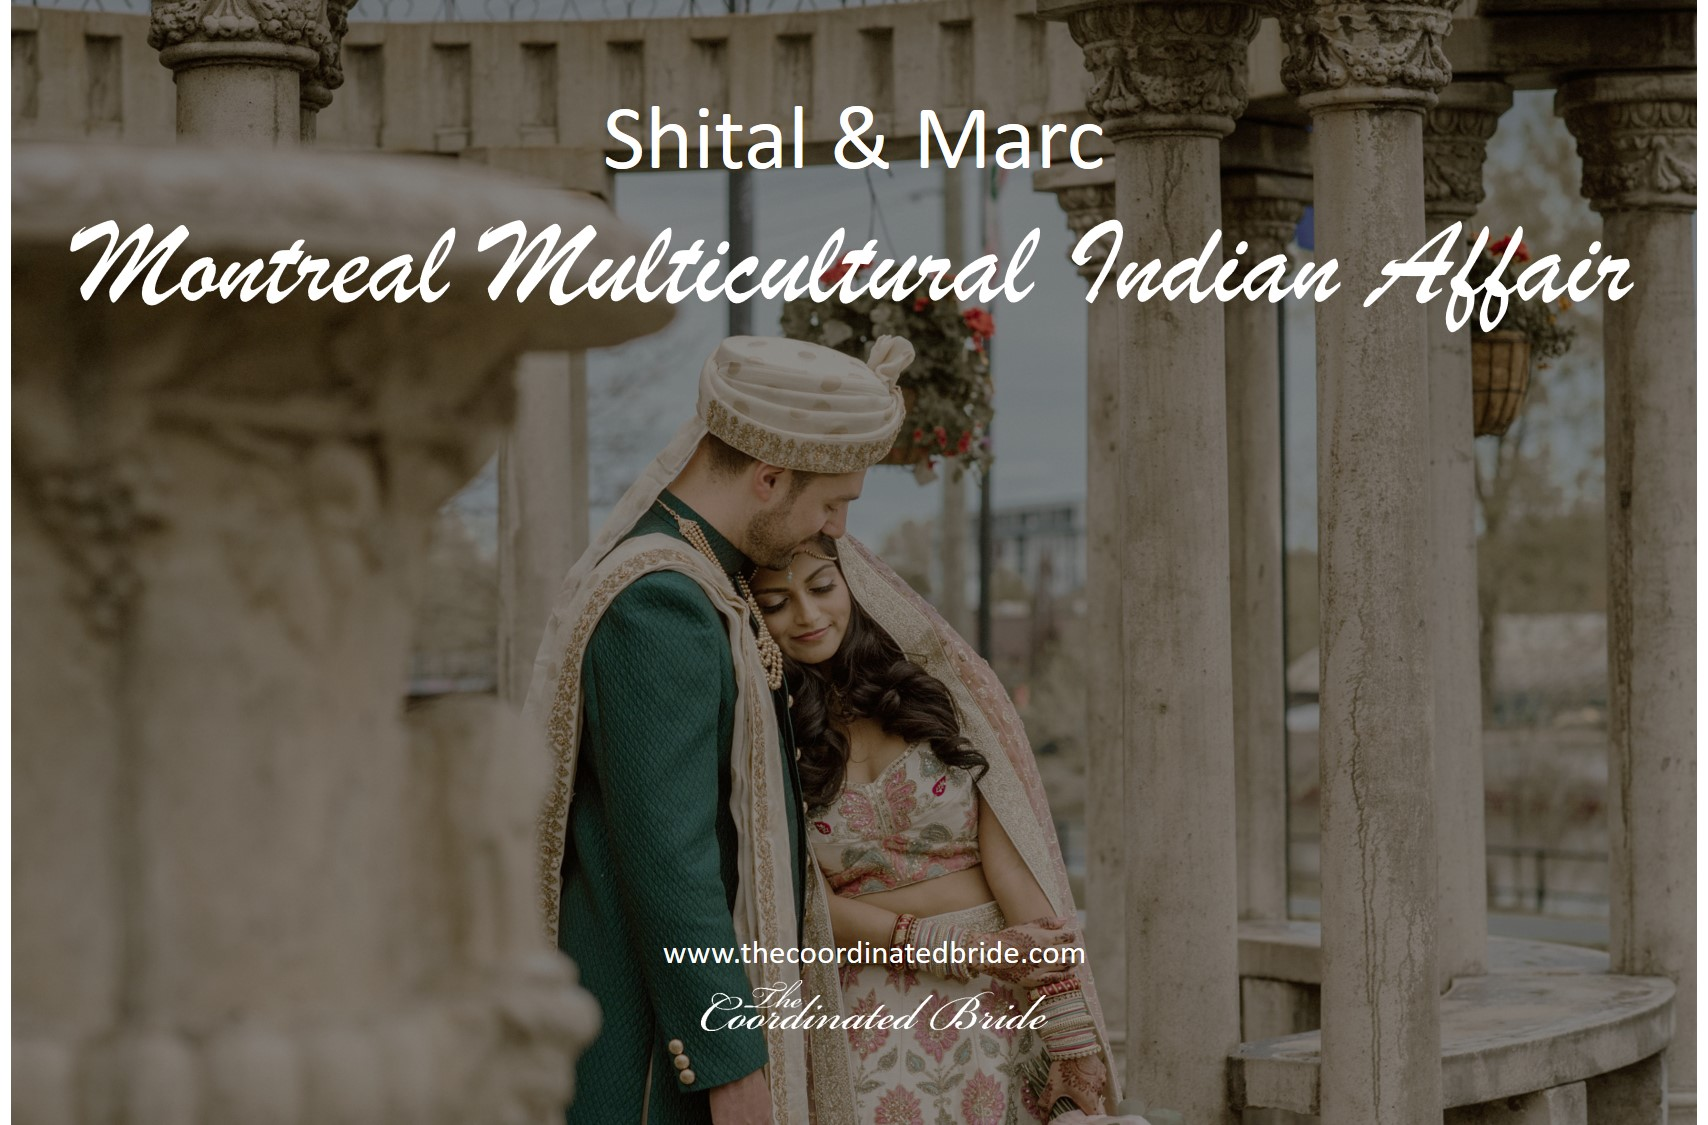 Shital and Marc's Montreal Multicultural Indian Affair